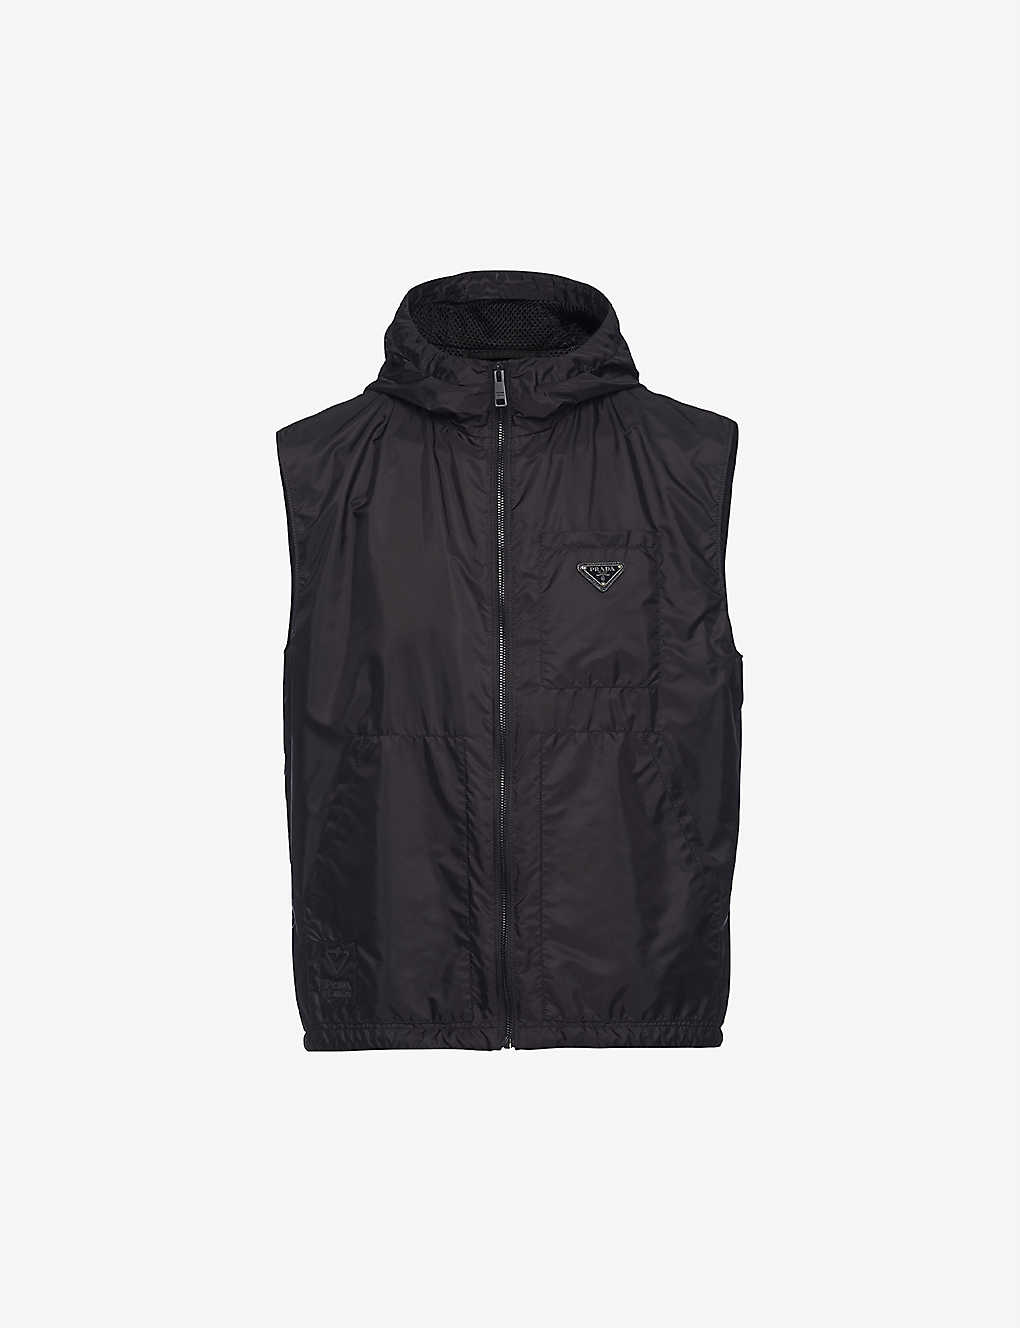 PRADA: Logo-plaque recycled nylon gilet